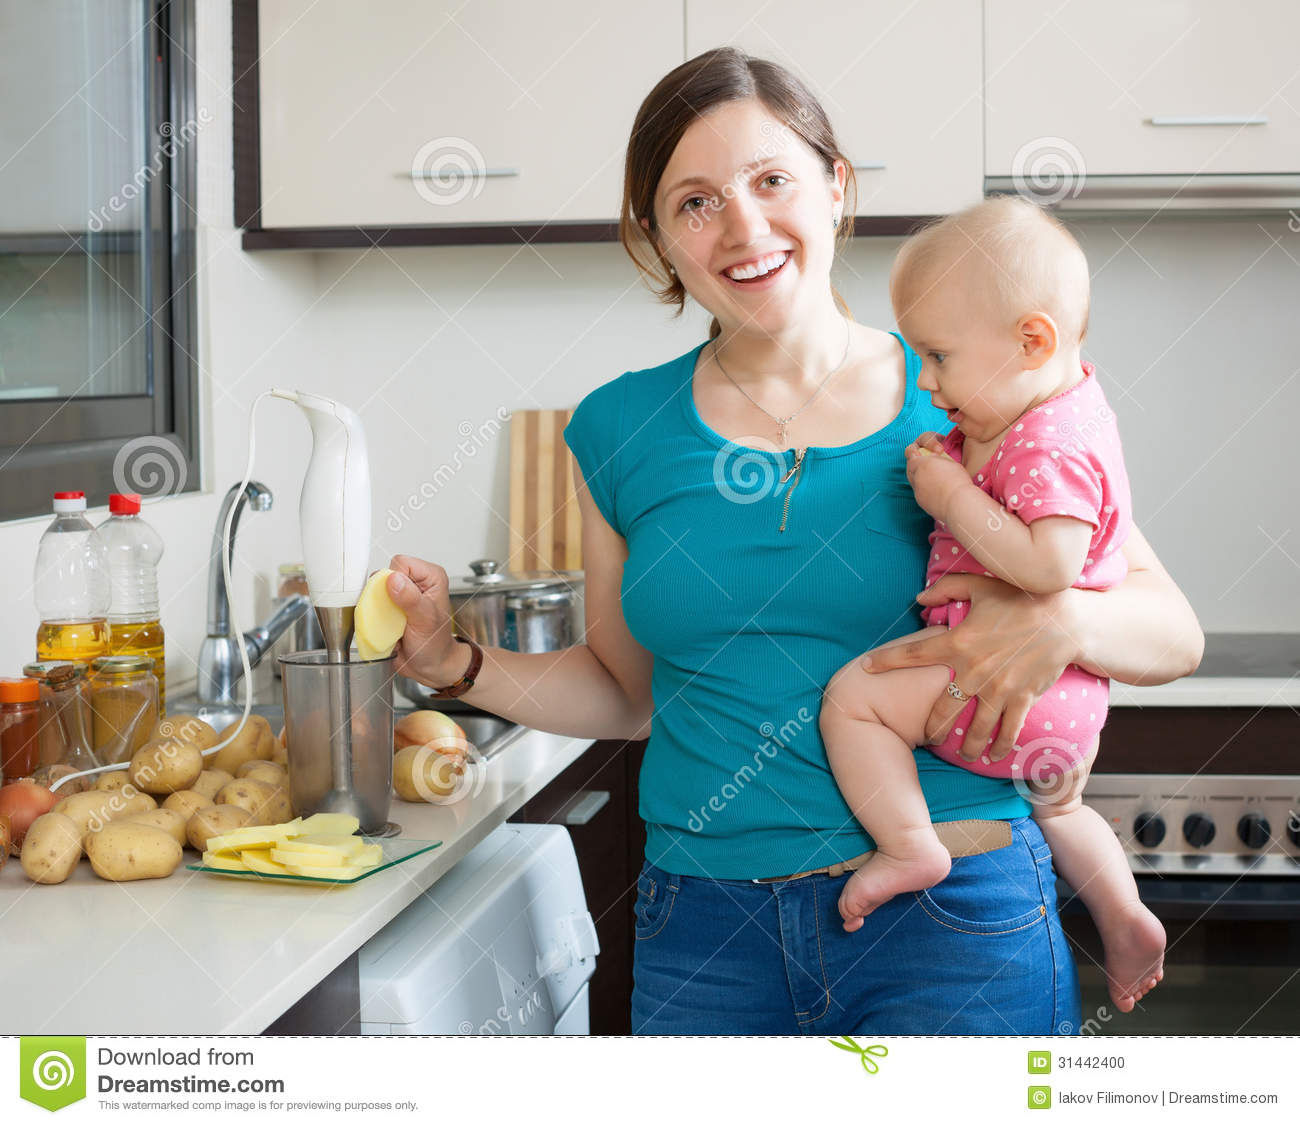 Women Kitchen: Woman With Baby Girl Cooking Mashed Potatoes Royalty-Free